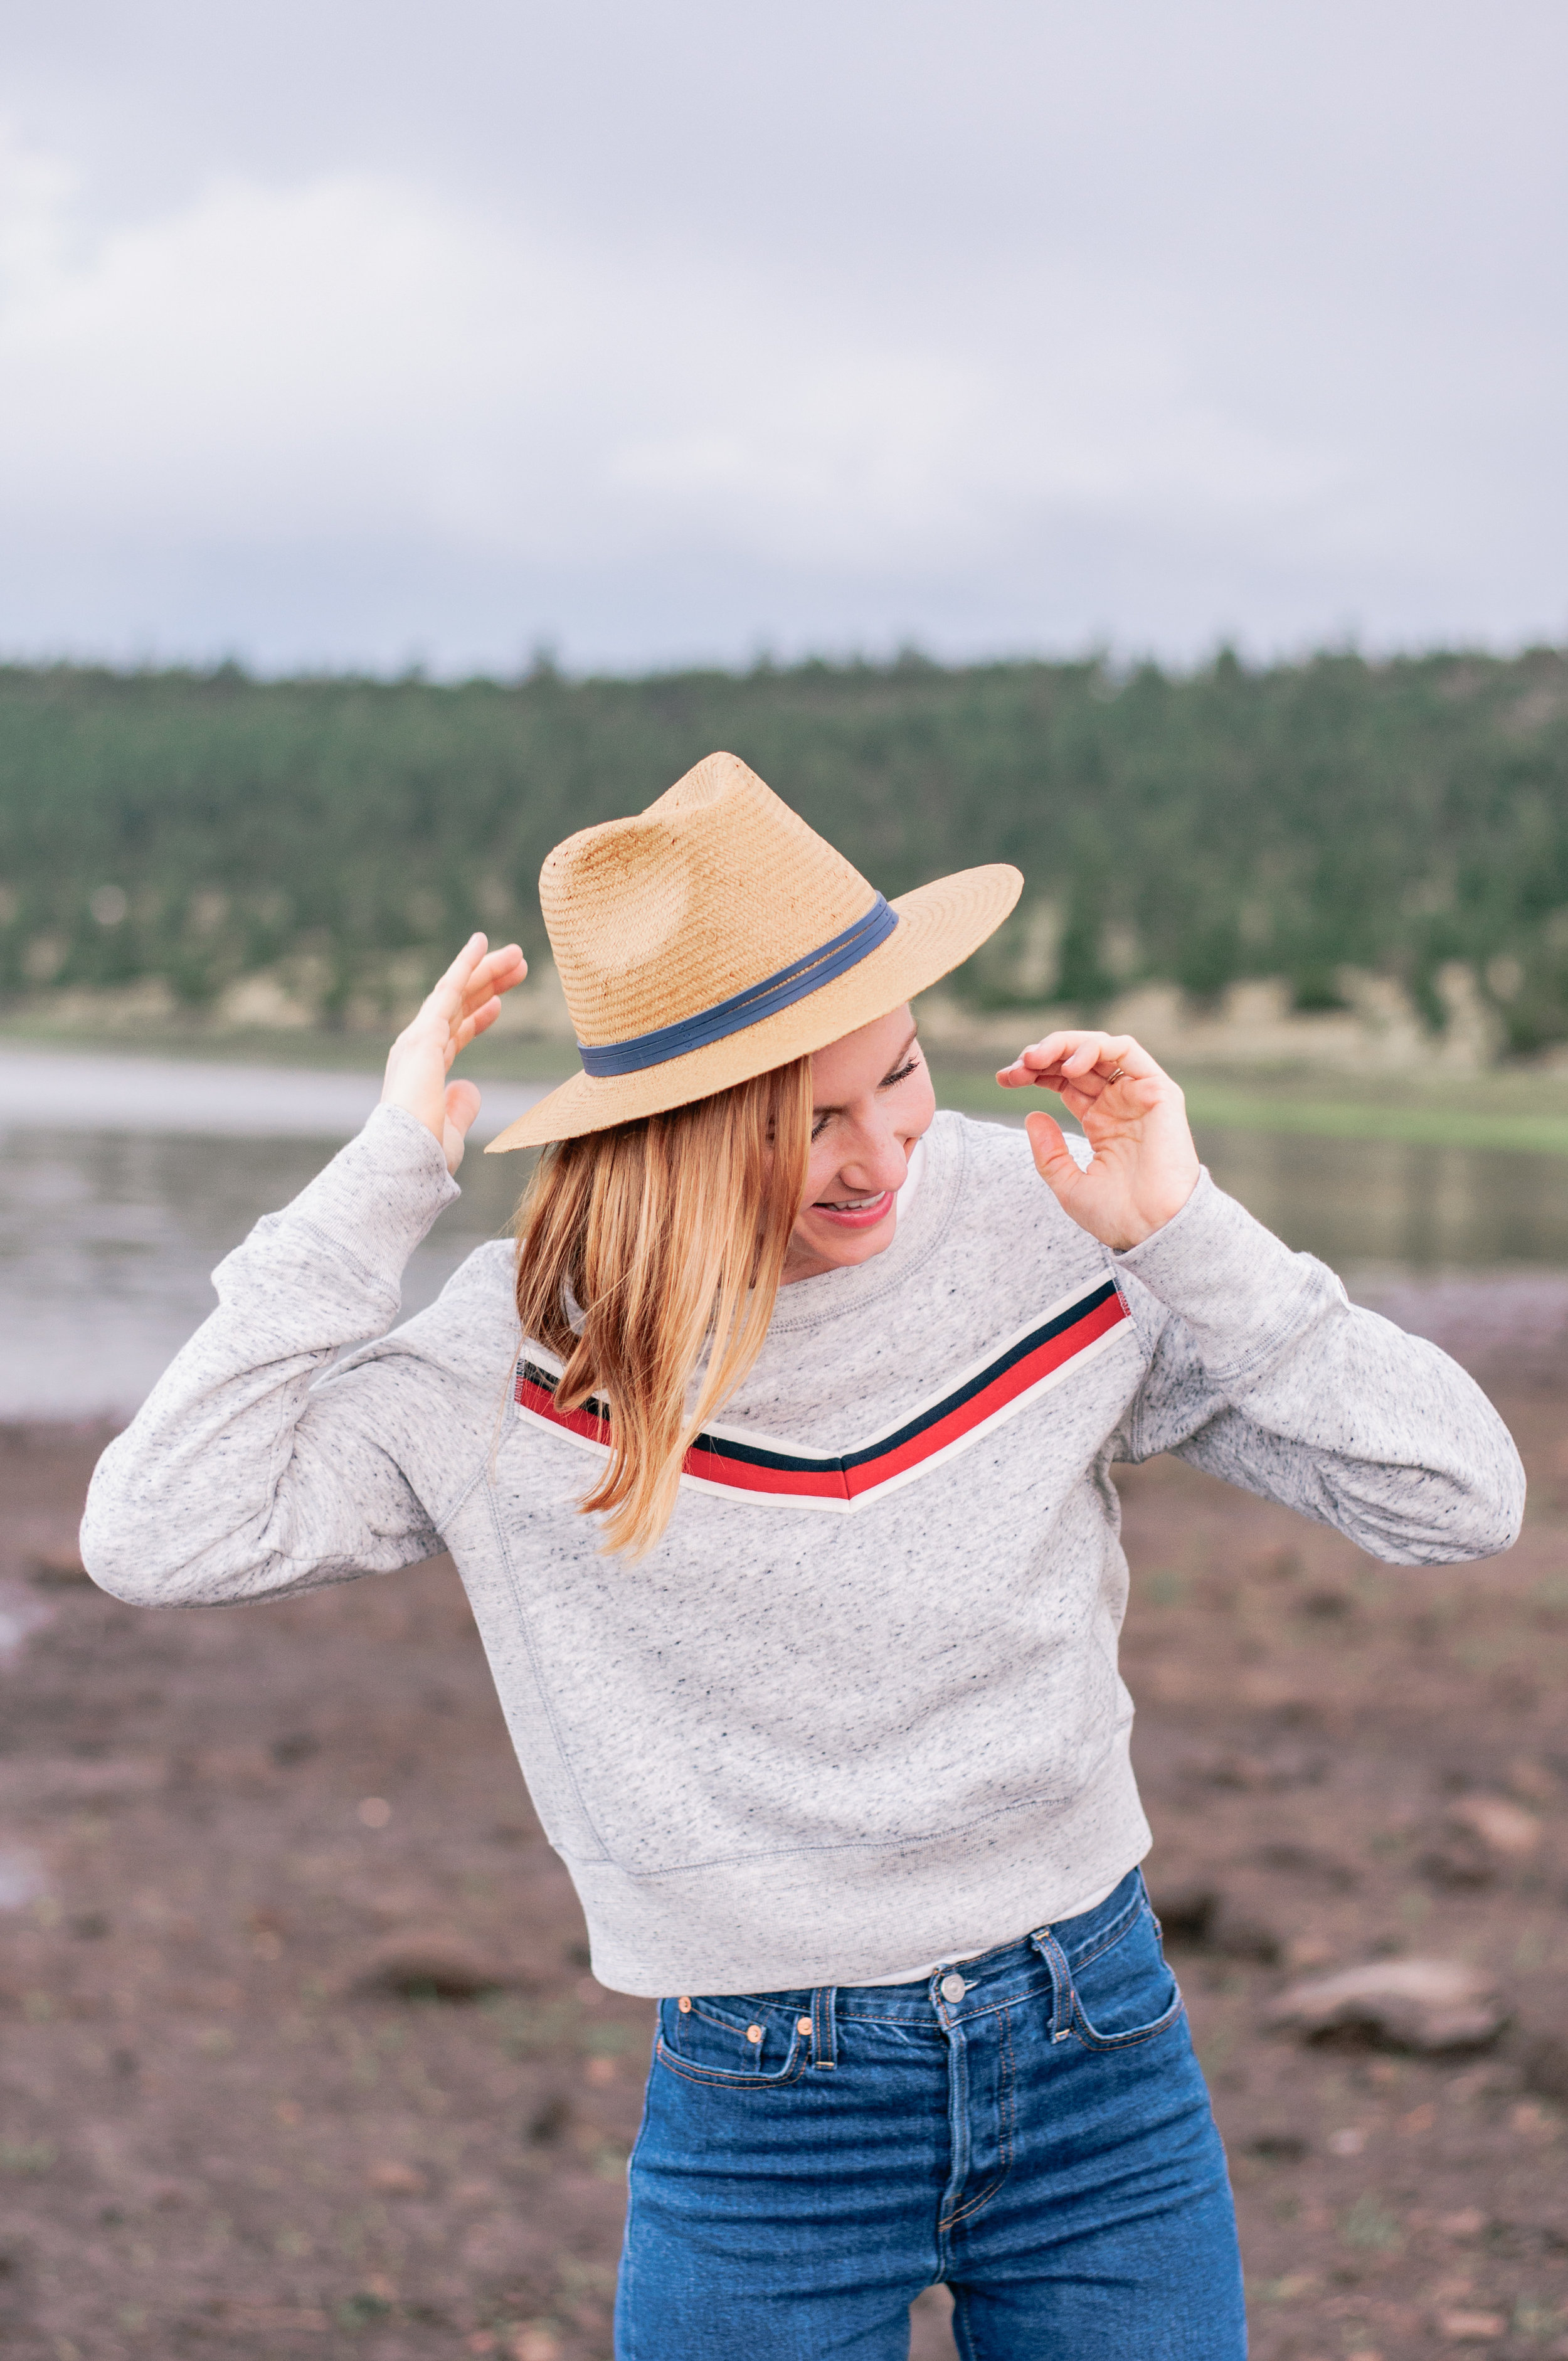 Cute Outdoor Clothing Outfit Ideas for Women